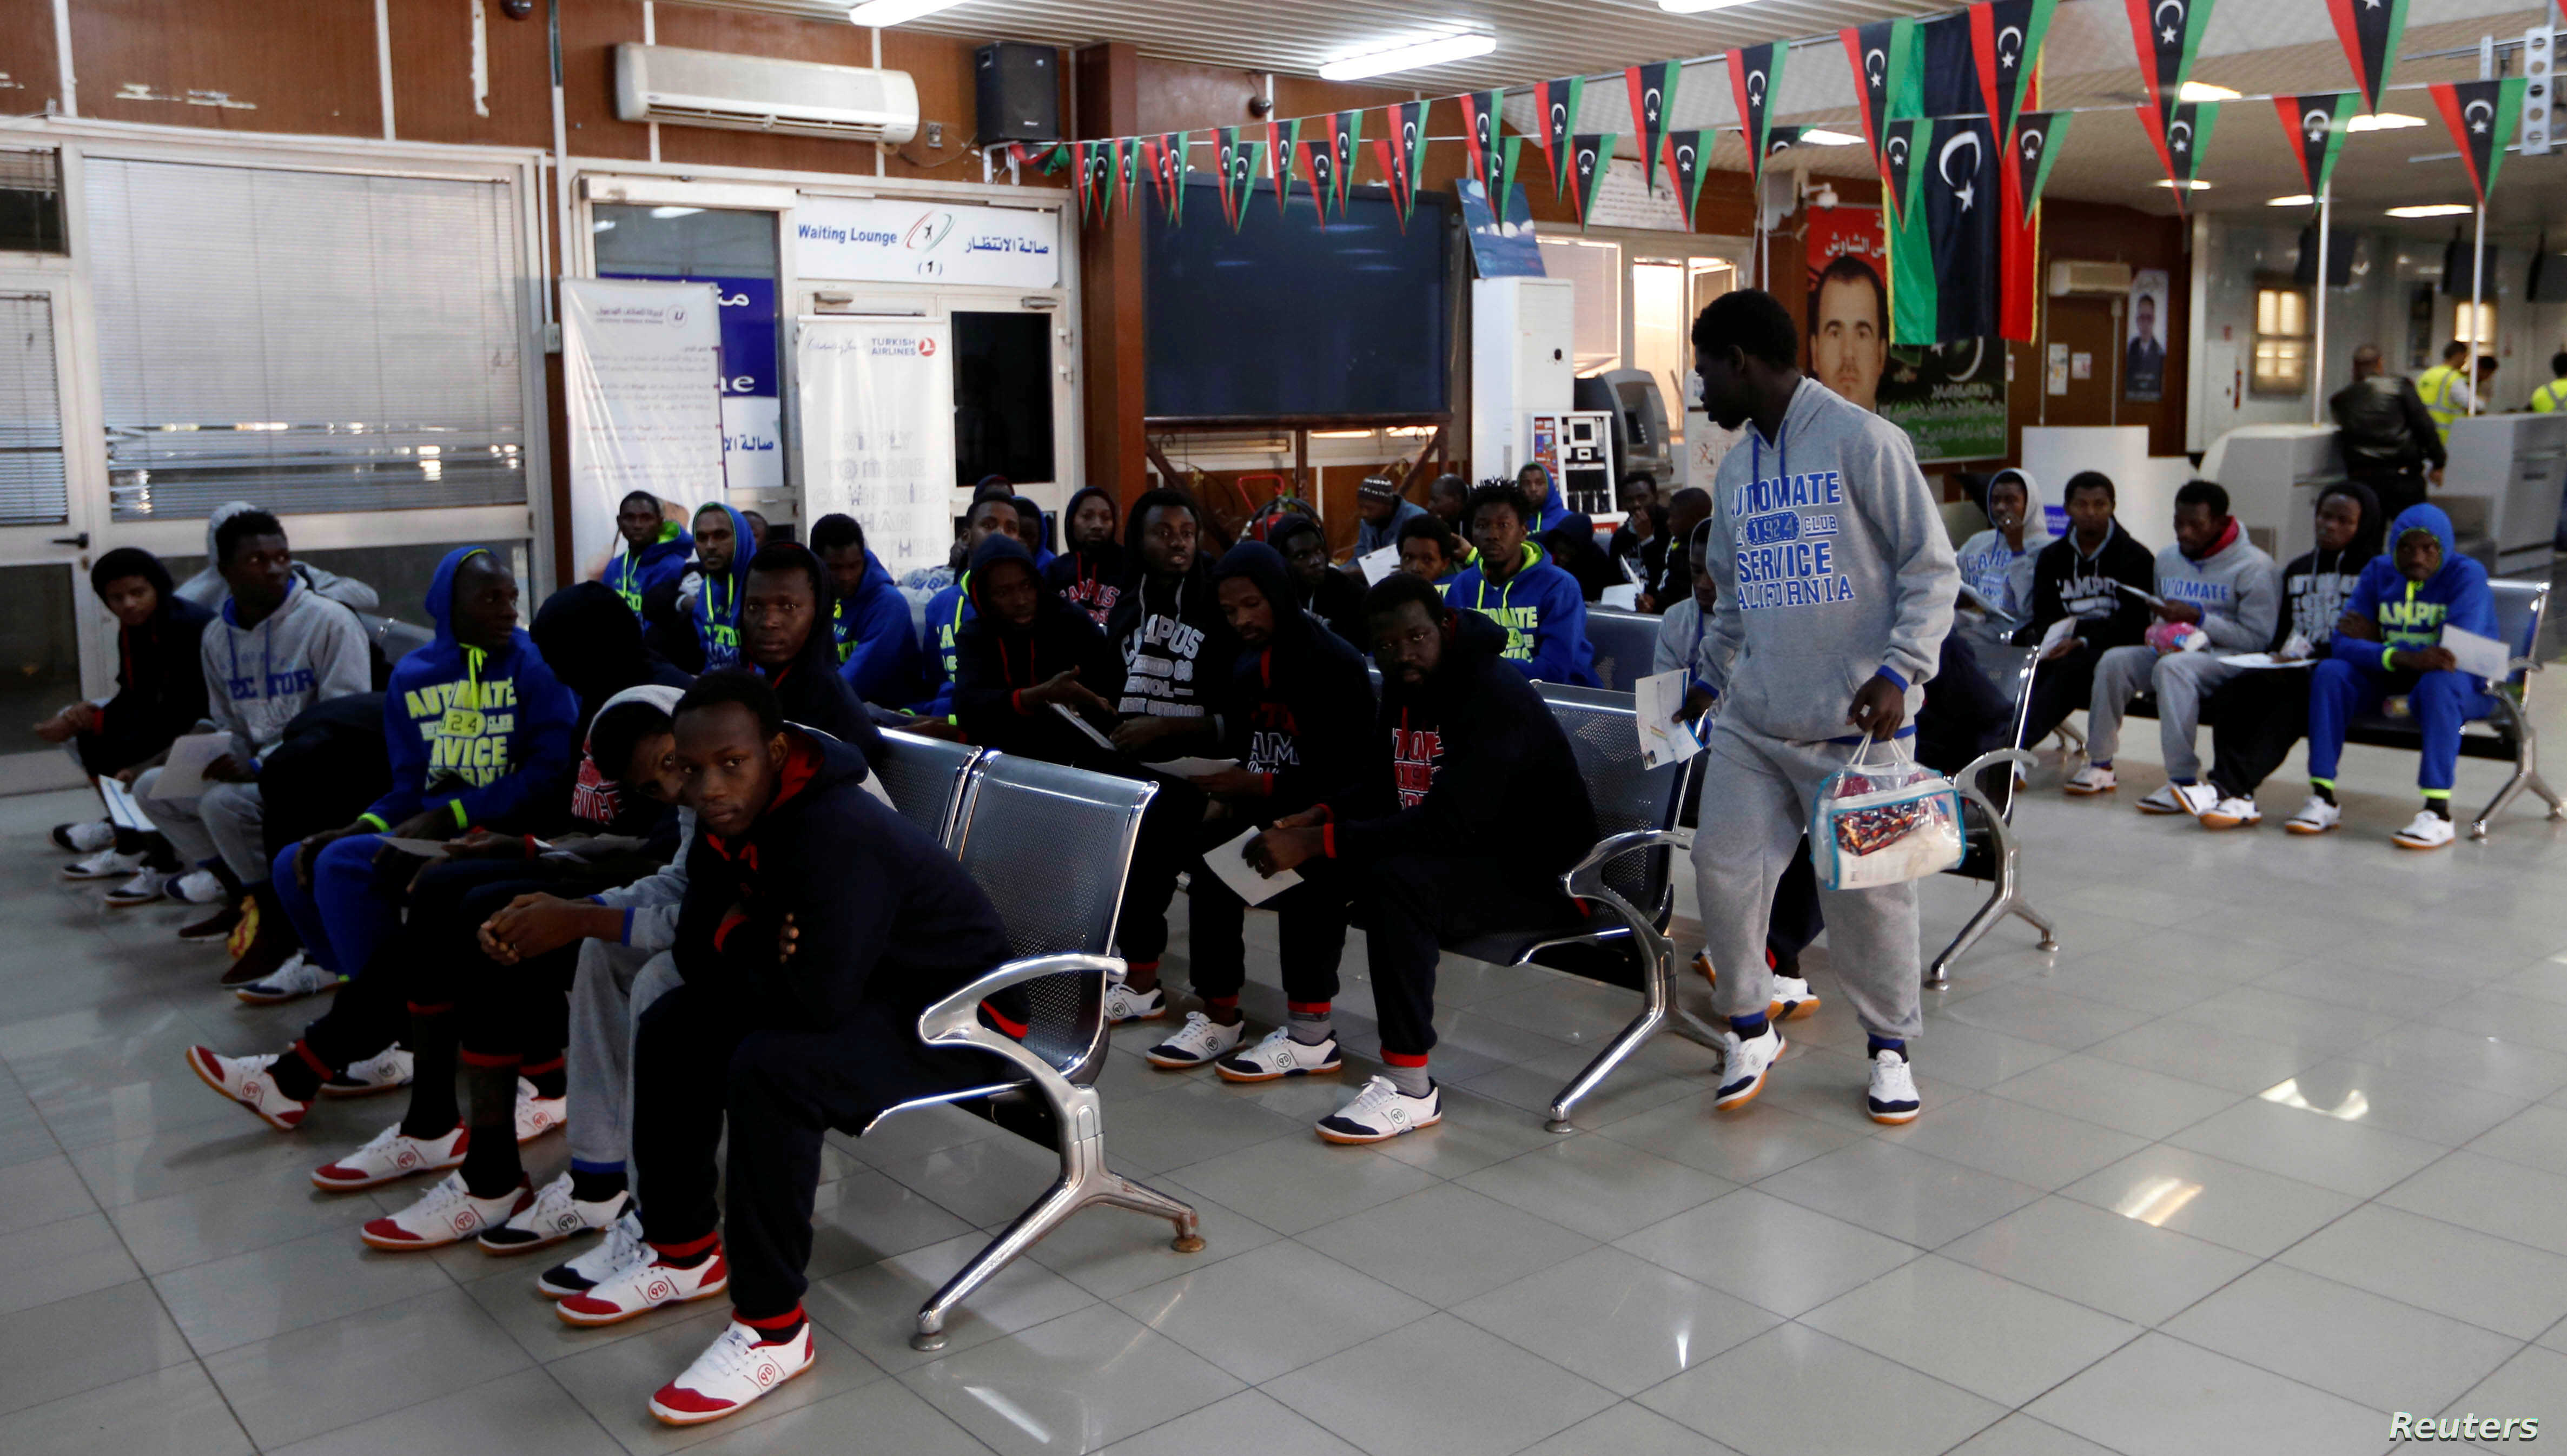 Guinean migrants wait at the airport before being deported to Guinea, in Misrata, Libya, Dec. 27, 2017.